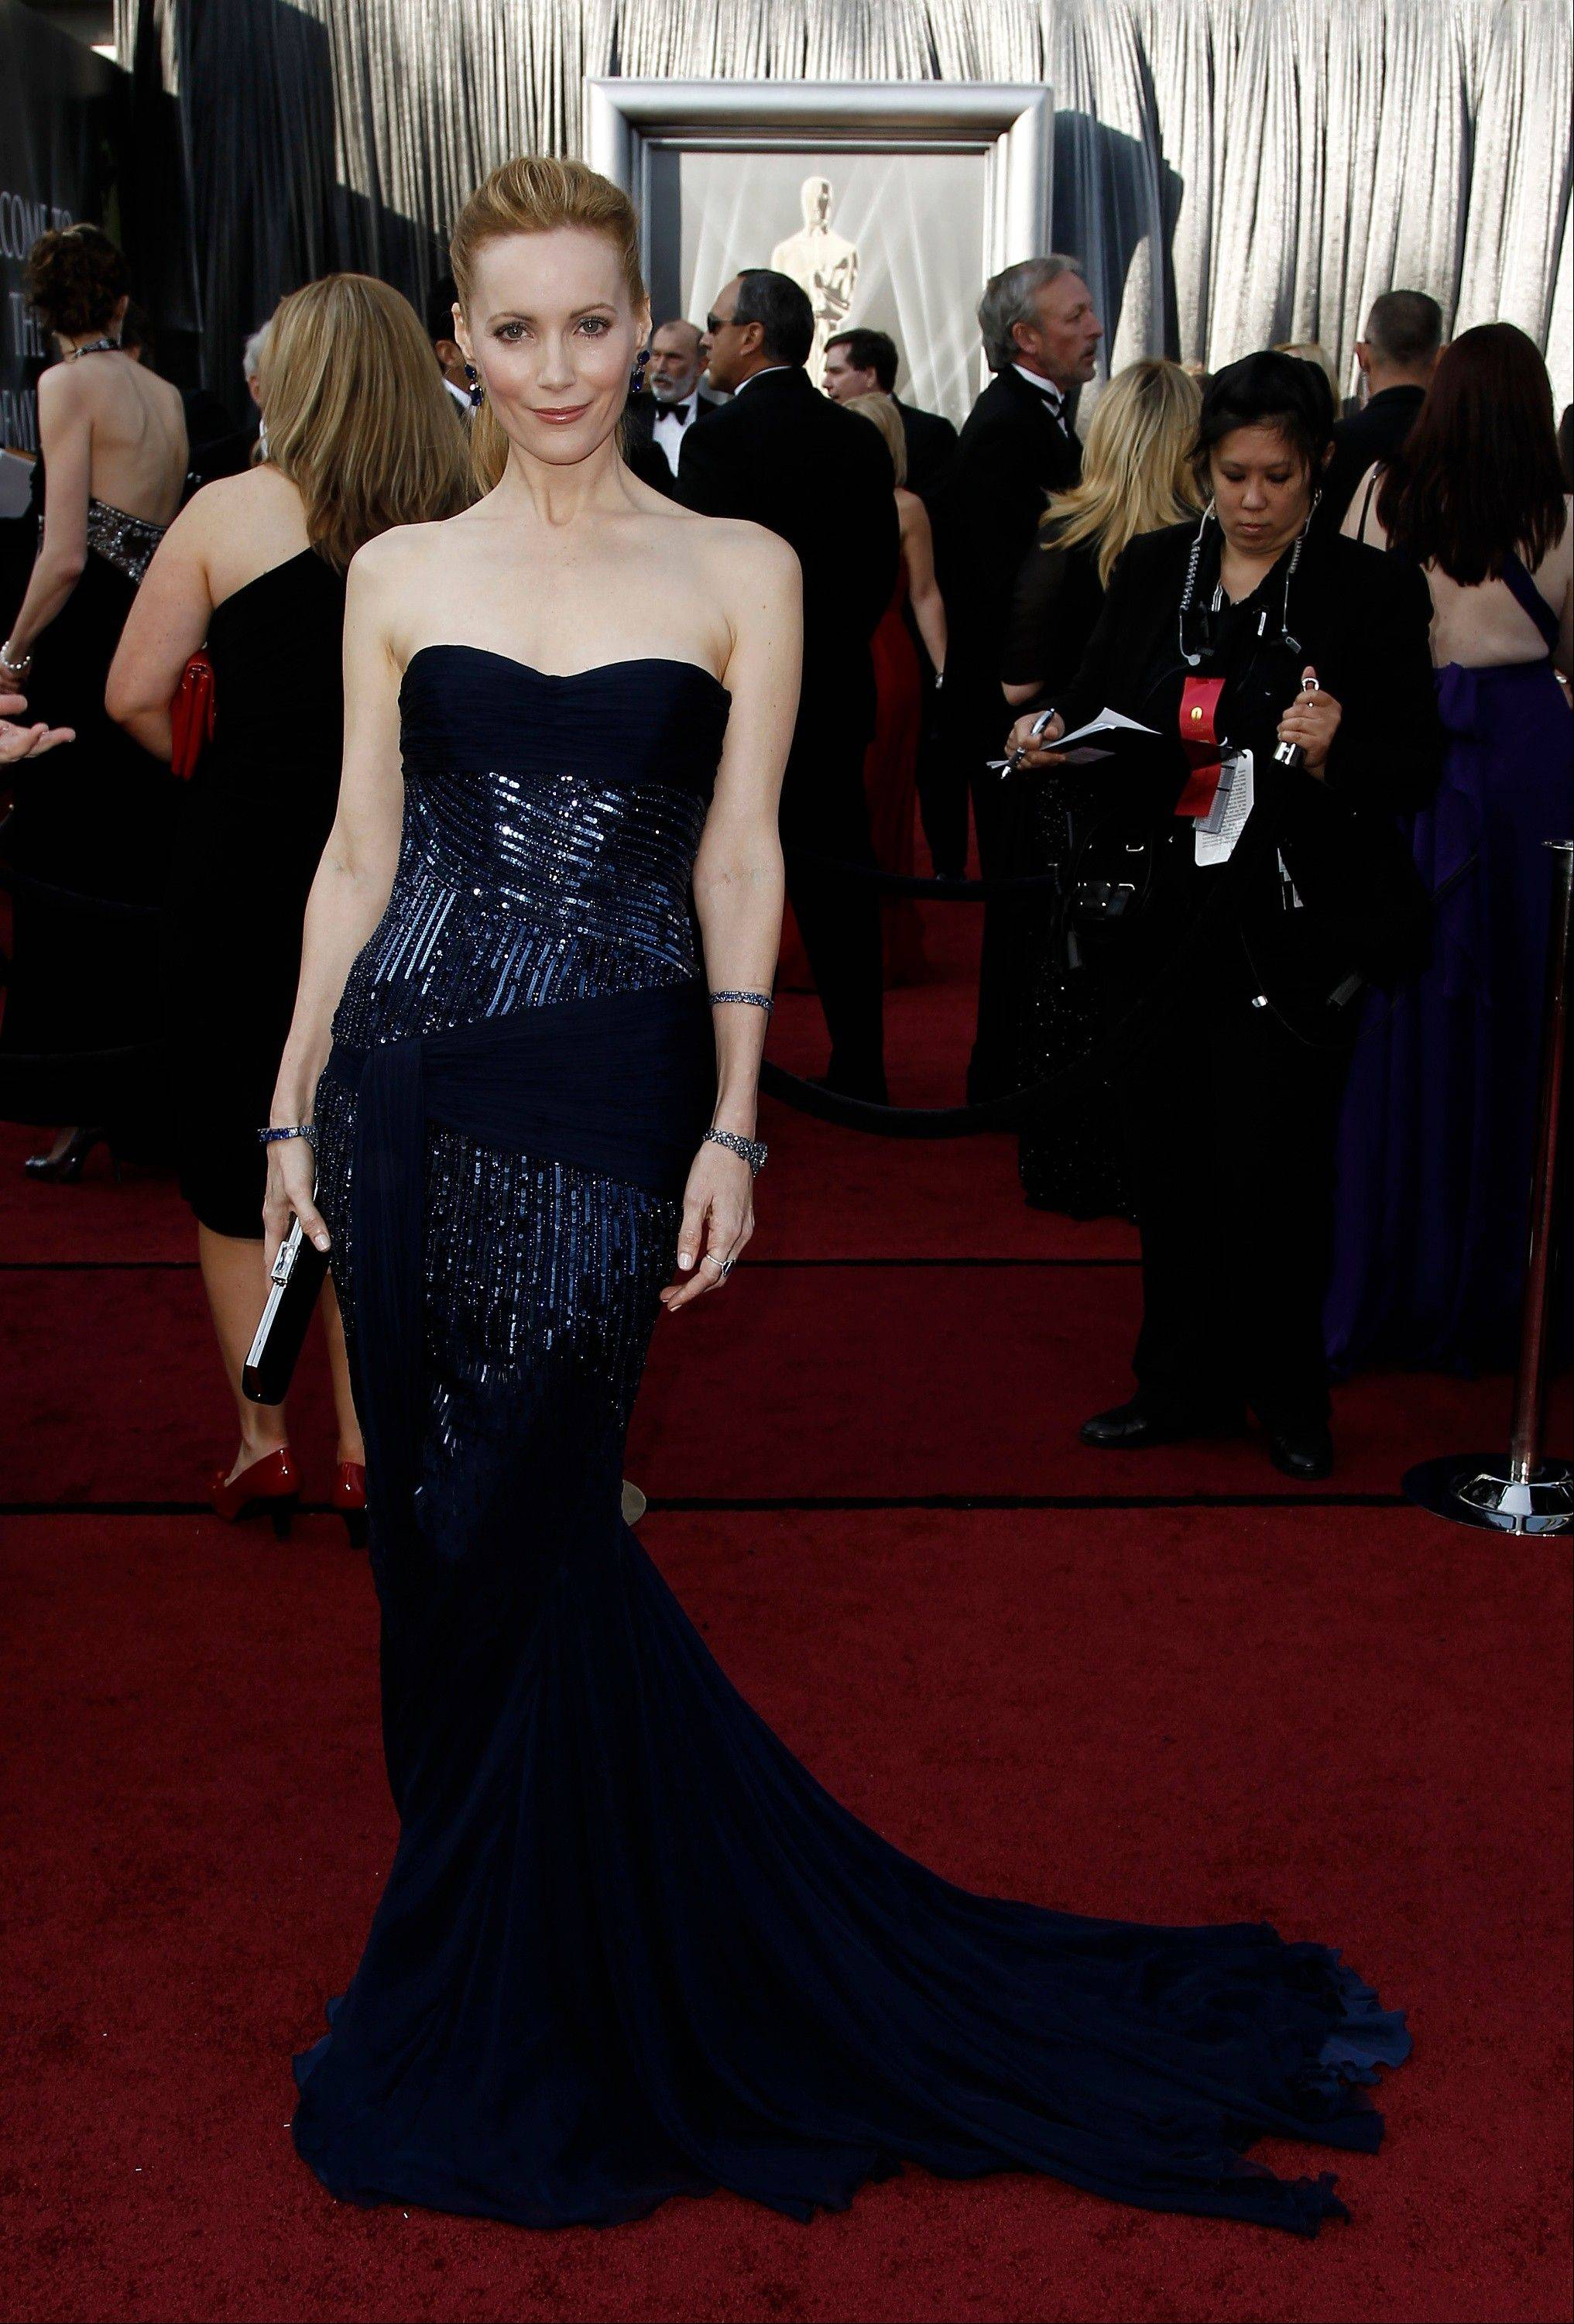 Leslie Mann arrives before the 84th Academy Awards on Sunday,.